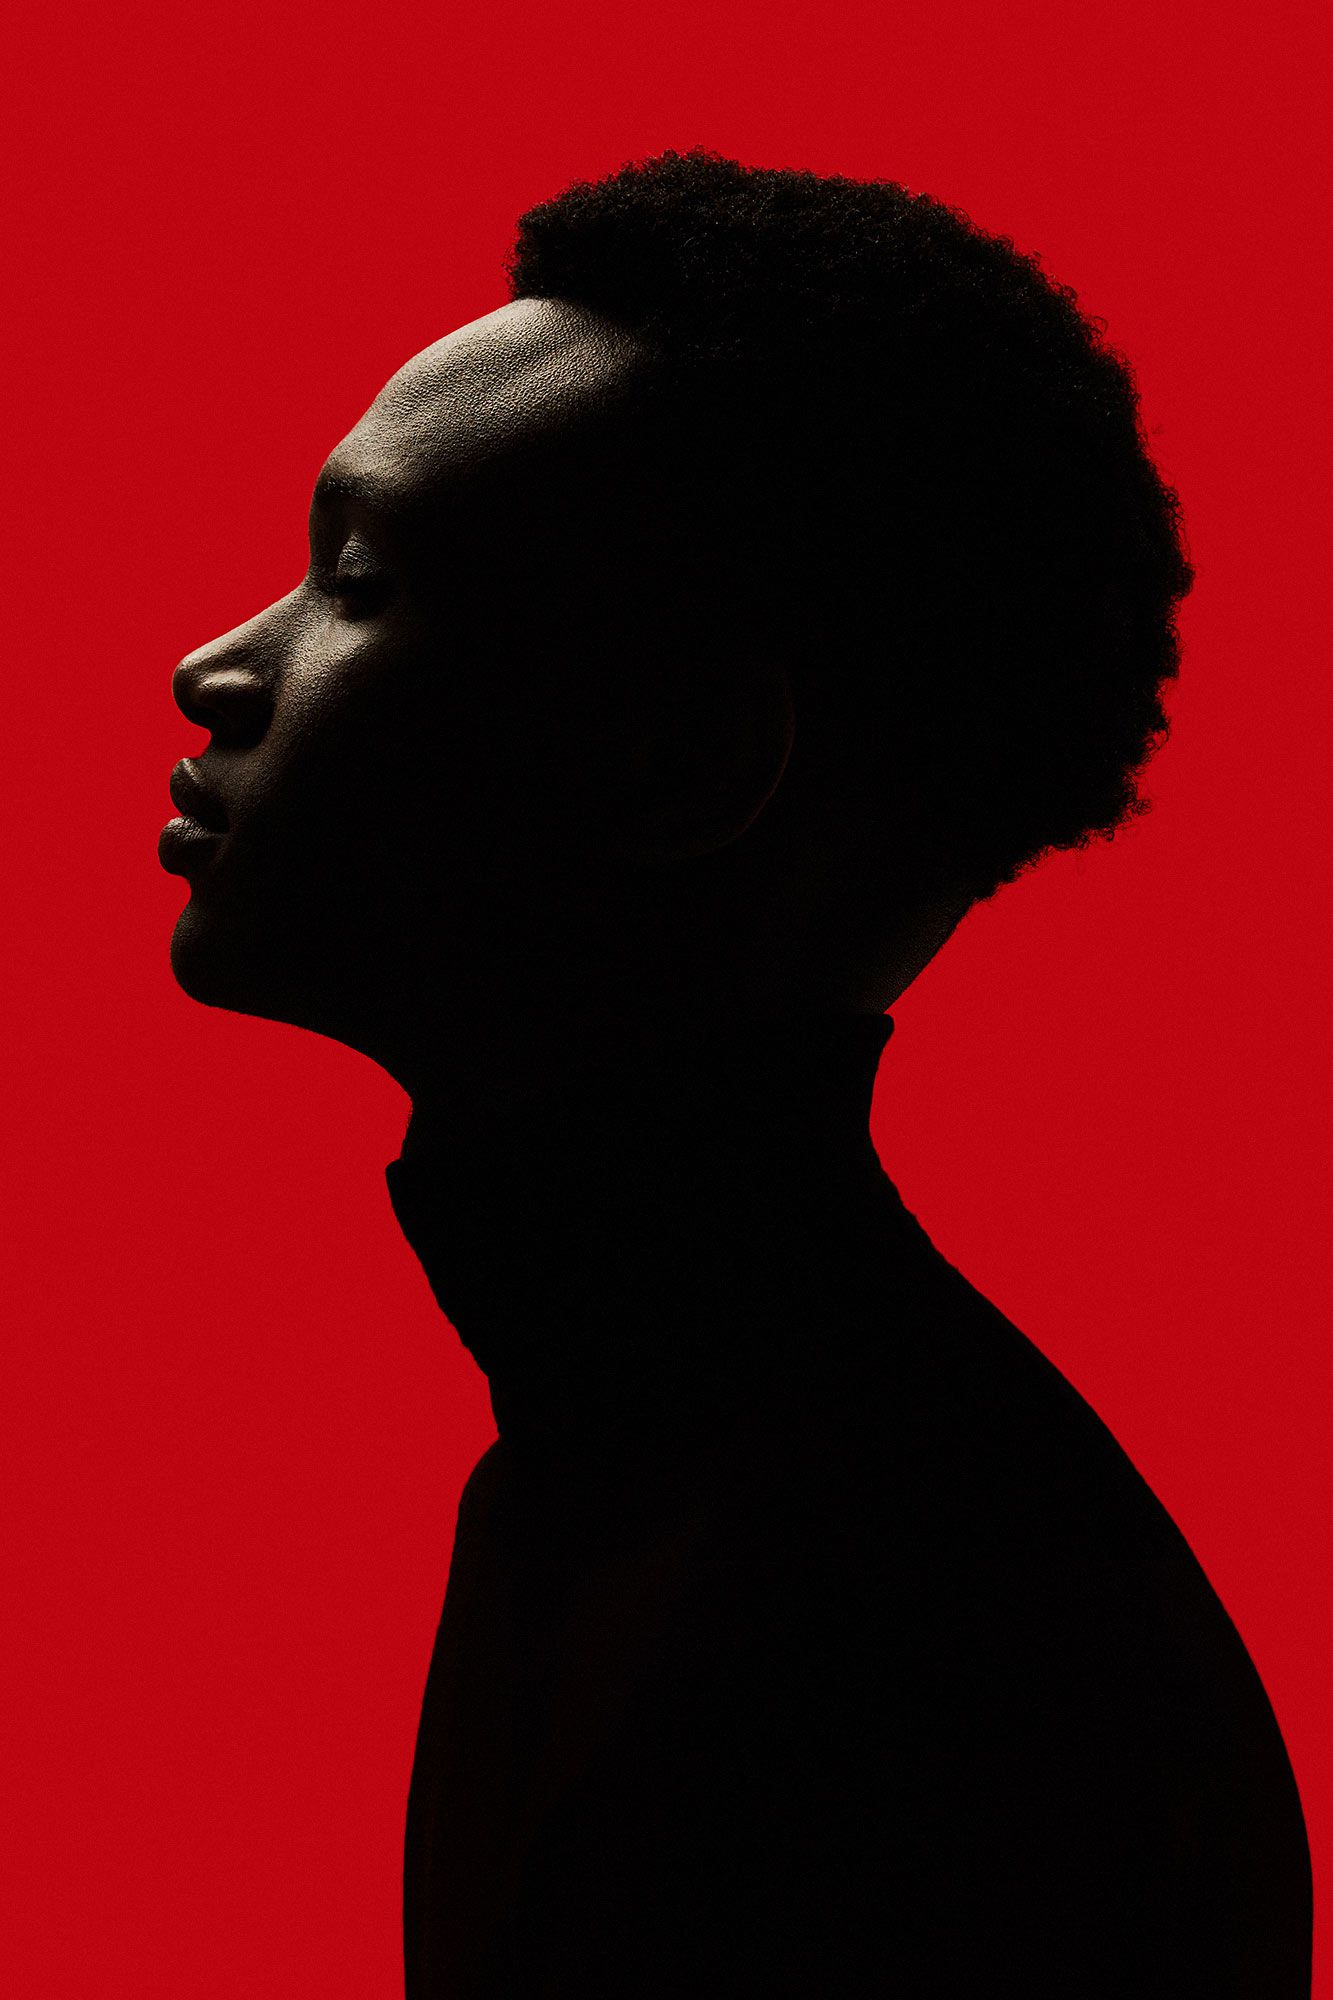 African american man portrait silhouette isolated over red background black red creative studio portrait